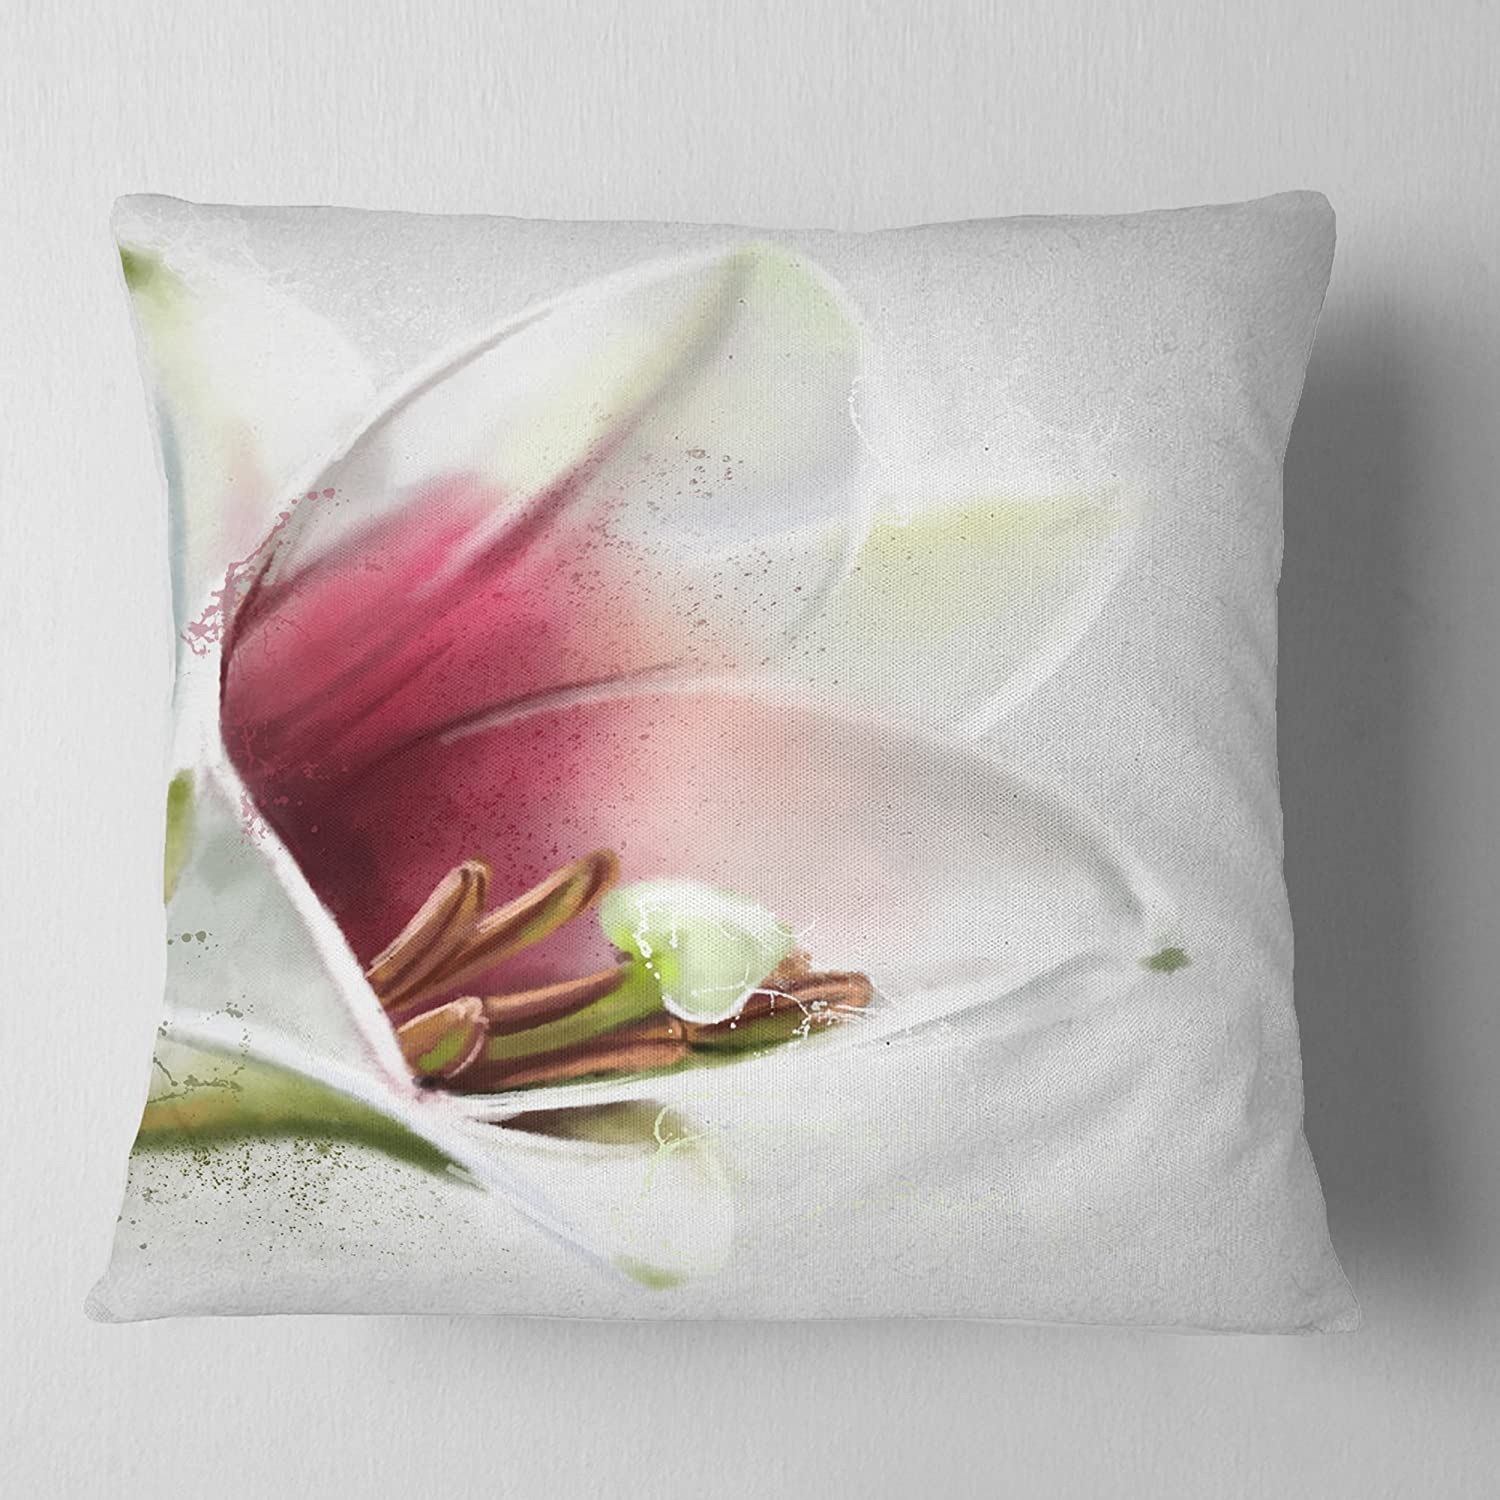 Sofa Throw Pillow x 16 in, Designart CU13785-16-16 Beautiful Lily Watercolor Flowers Pillowwork,Cushion Cover for Living Room